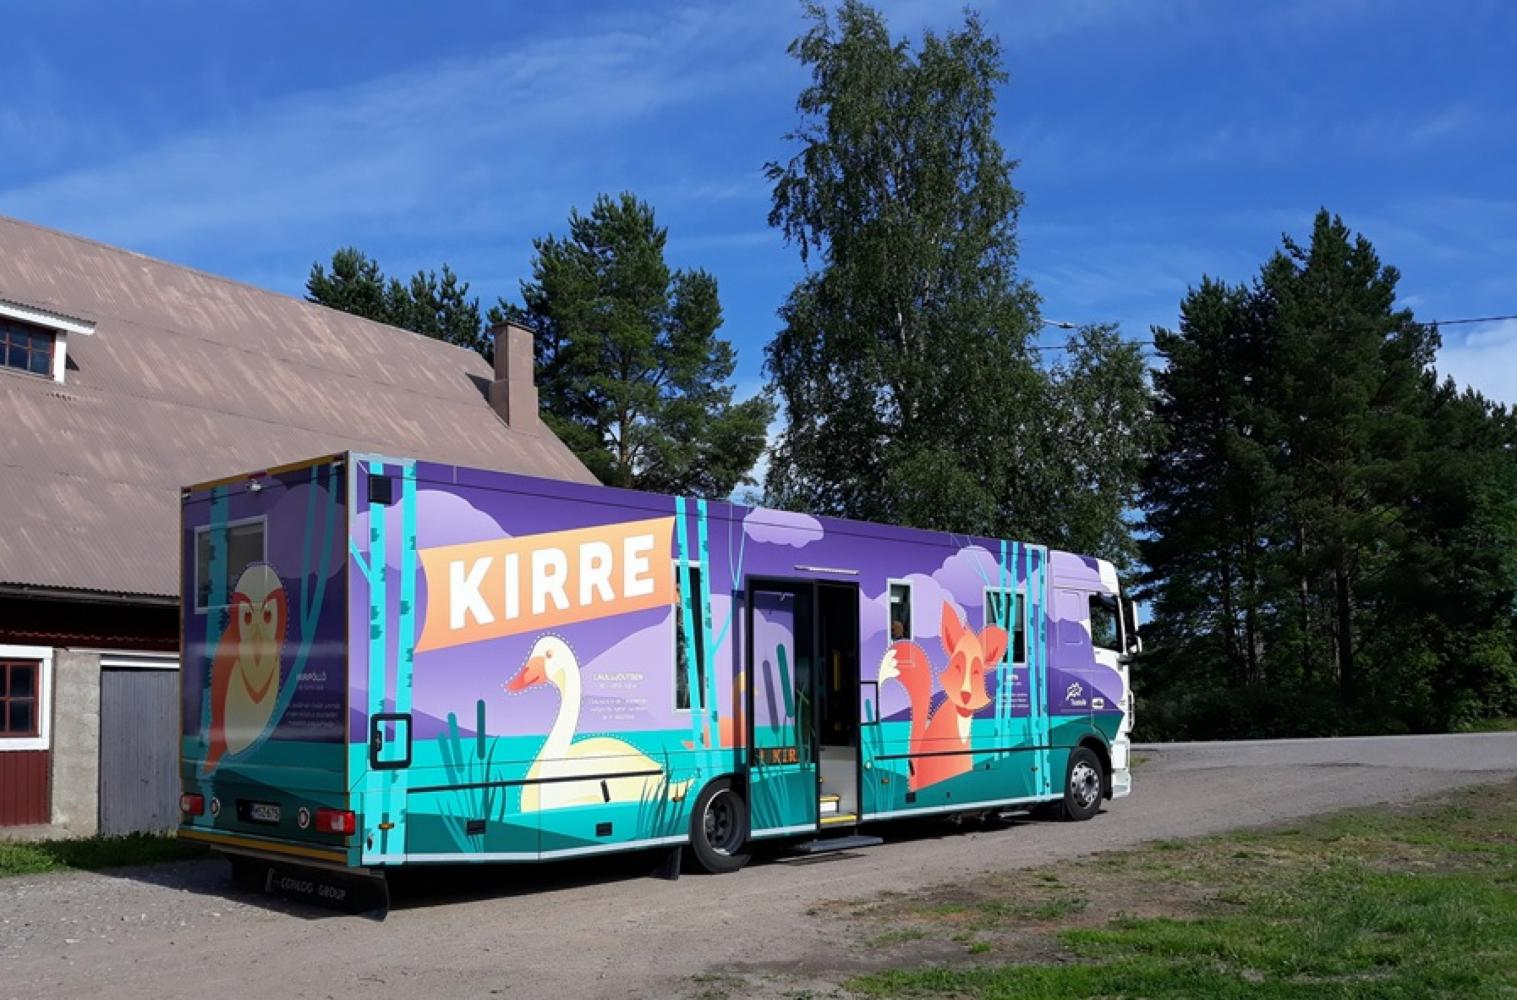 Tuusula Mobile Library